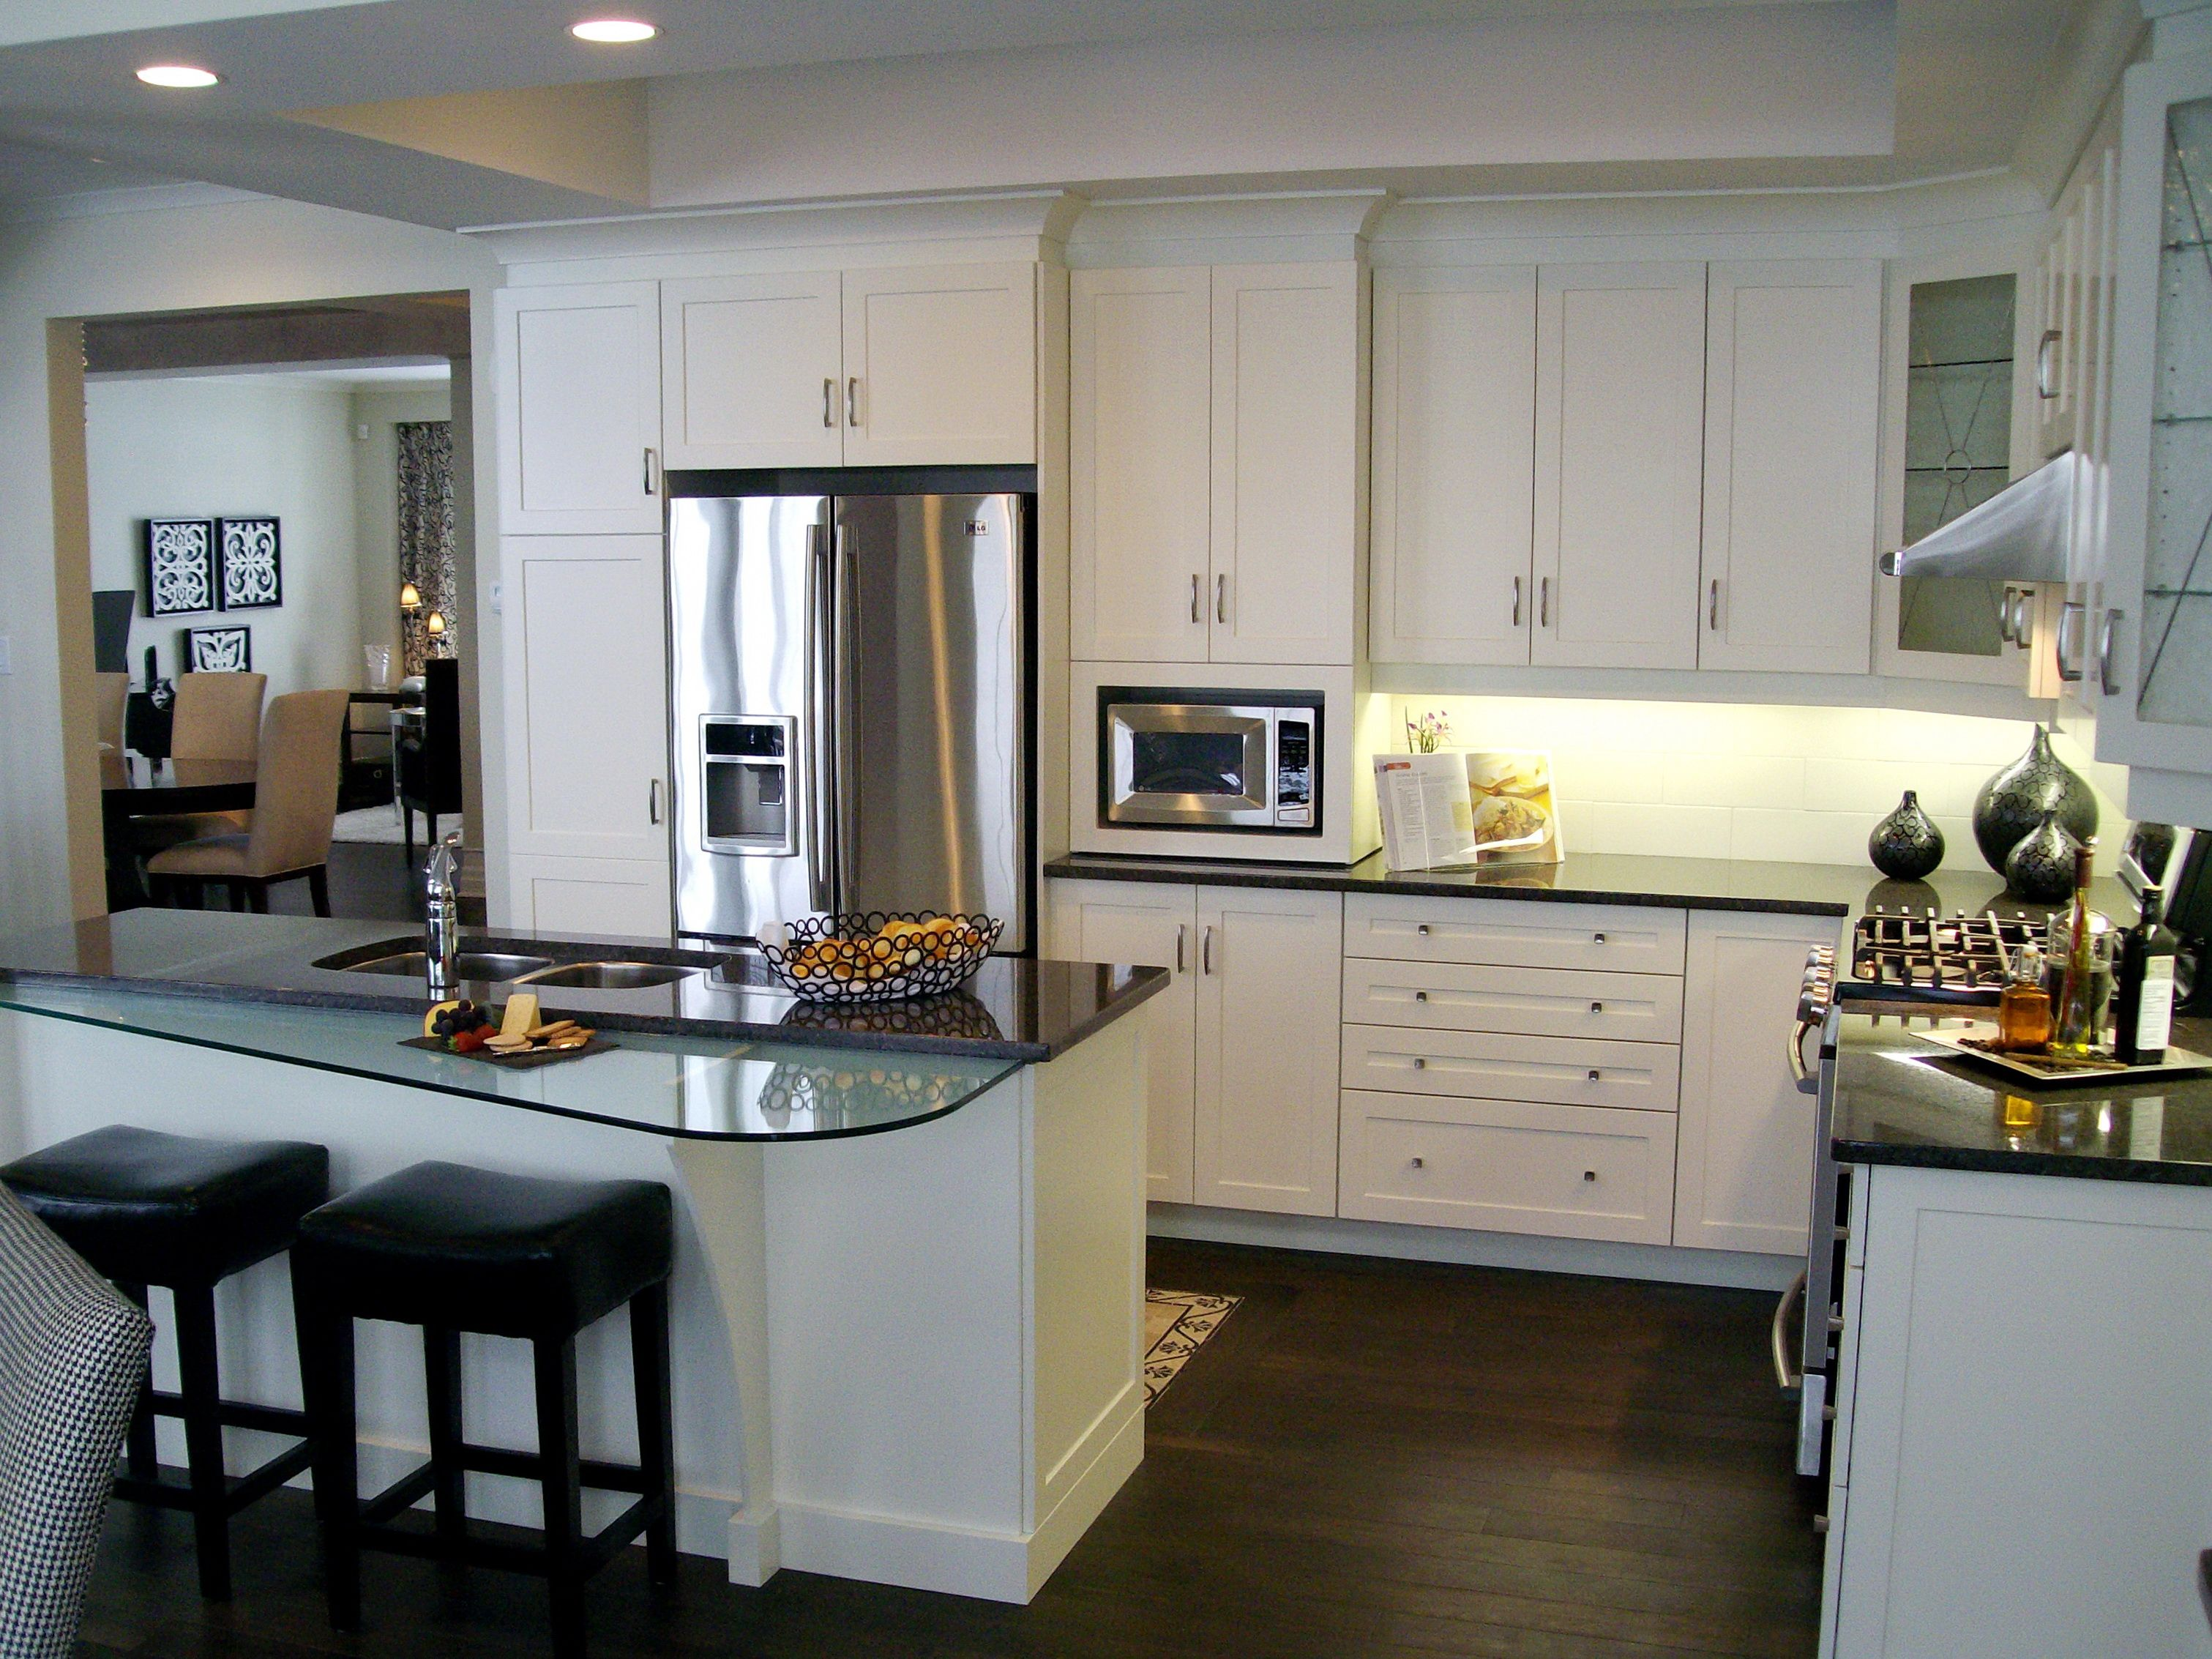 White Lacquer Shaker Cabinets, with Antique Brown Granite & Glass ...